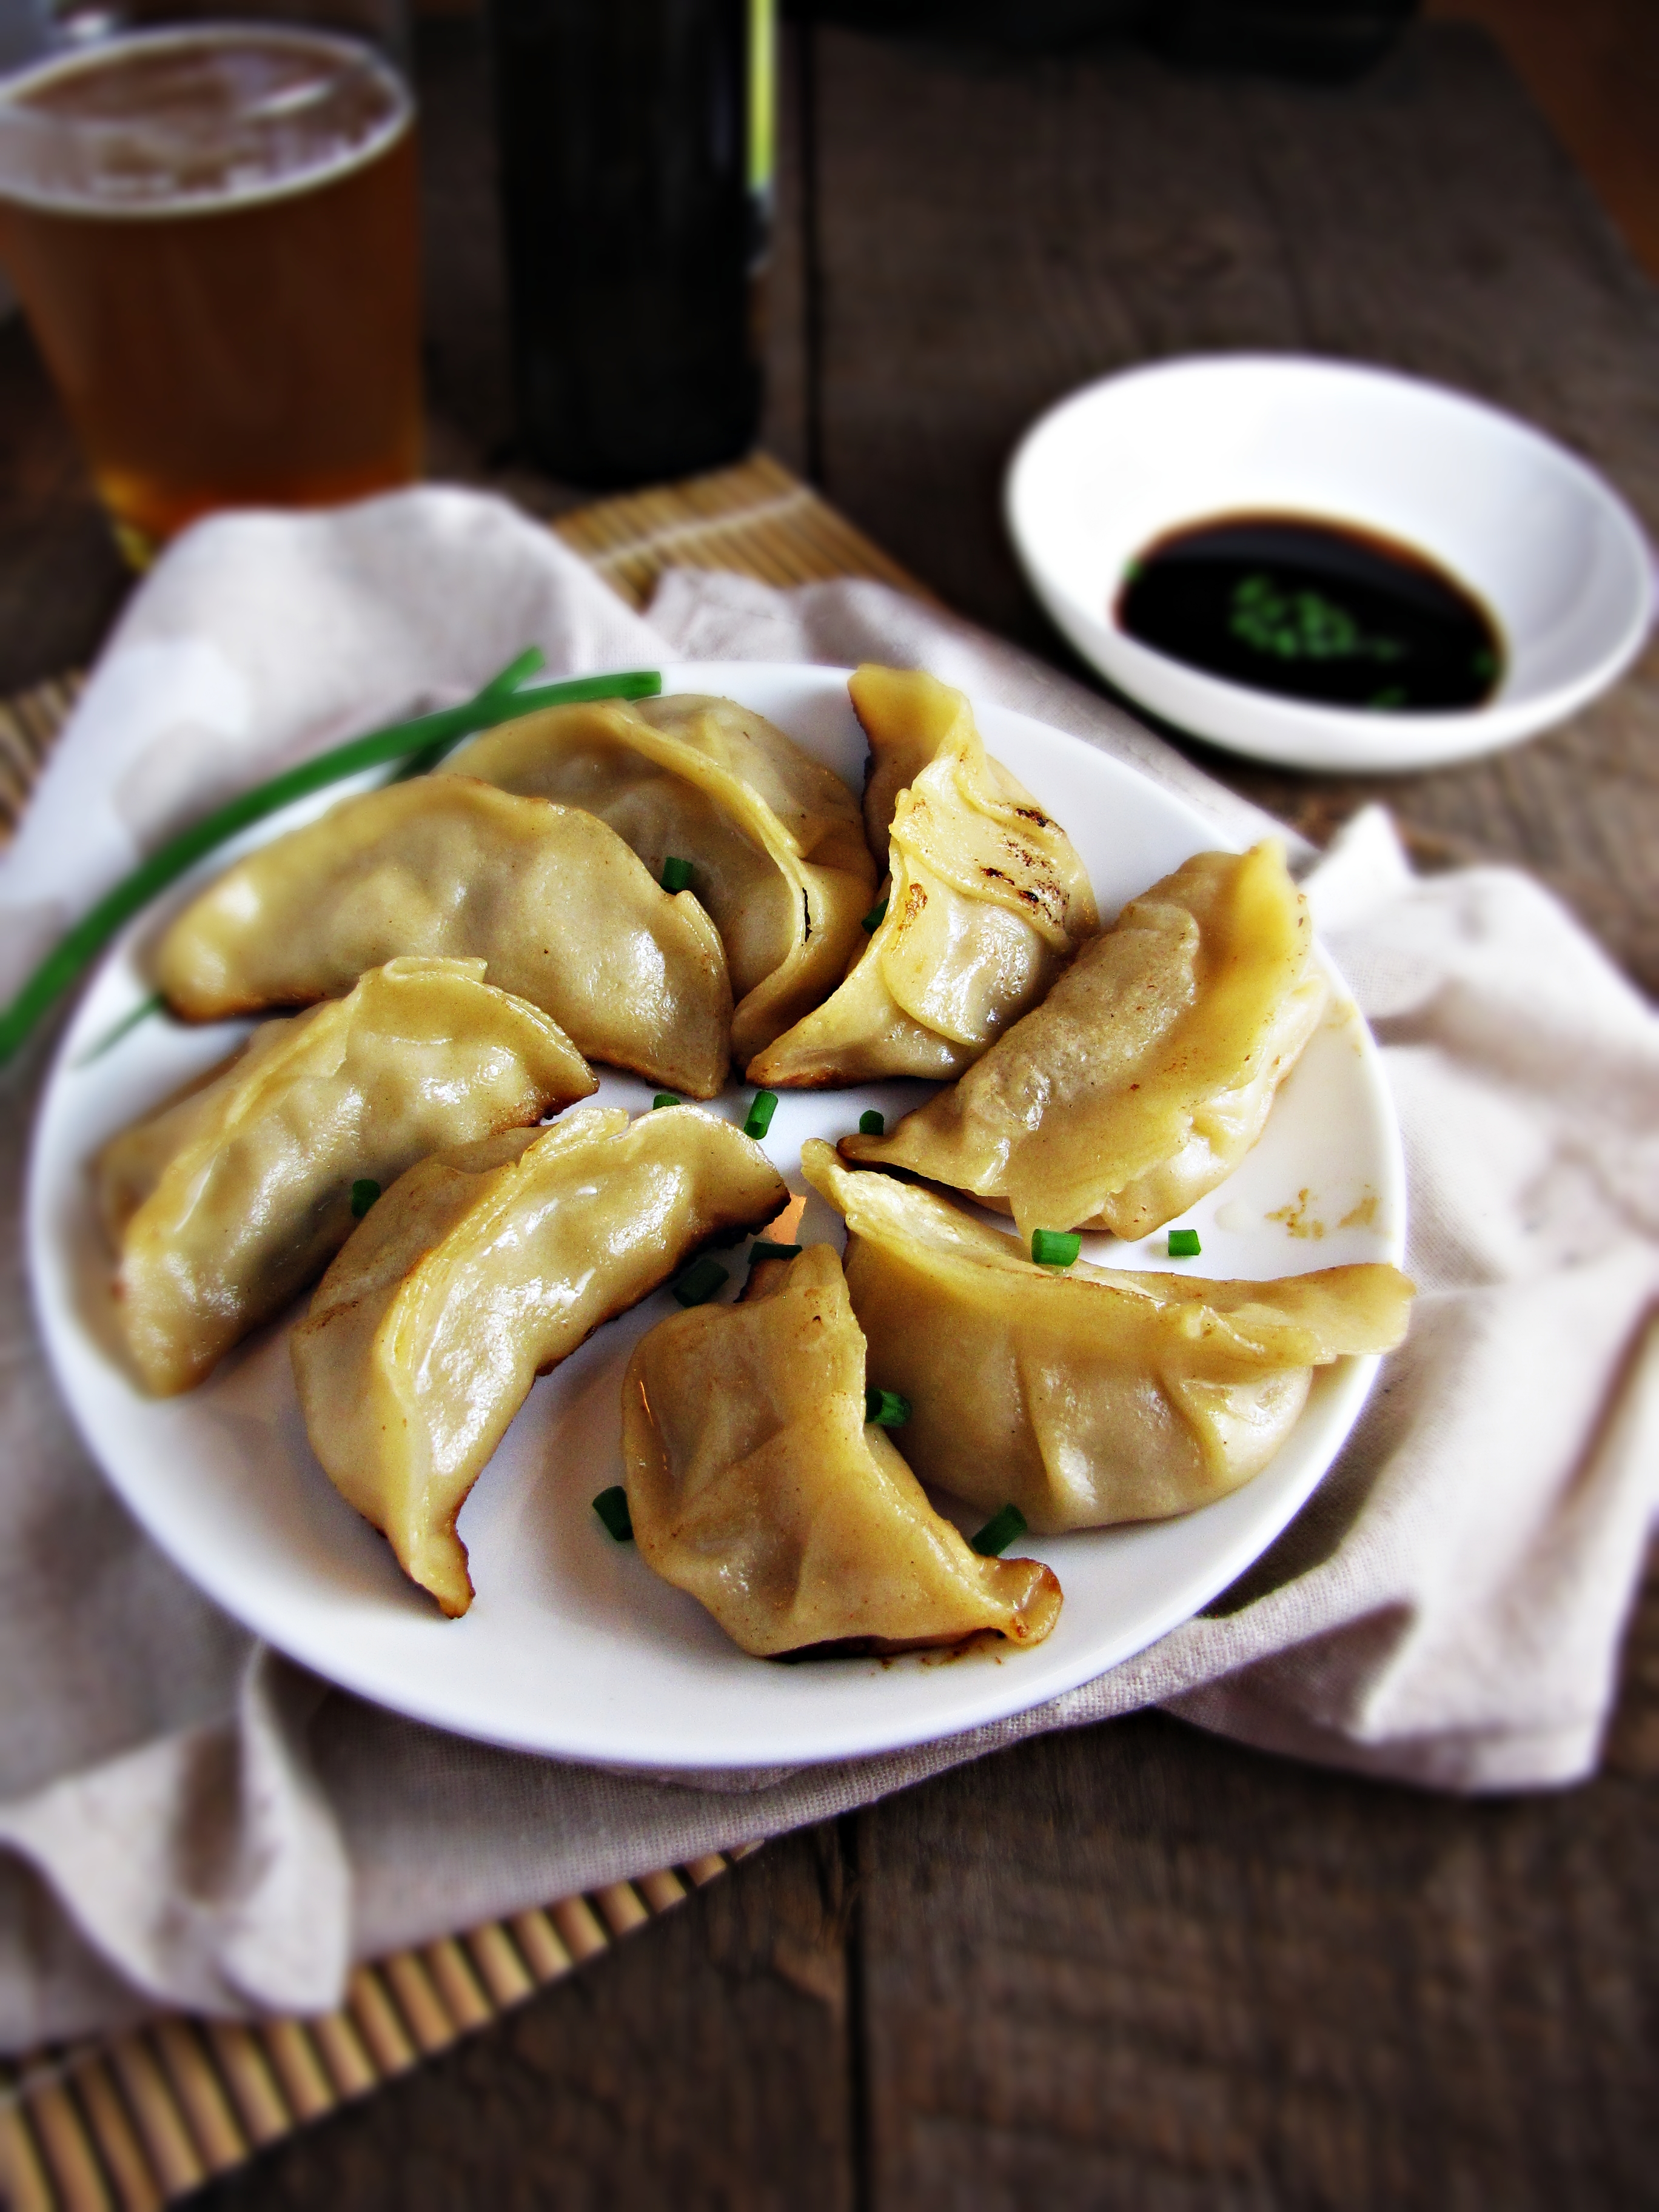 Homemade Pork and Apple Potstickers